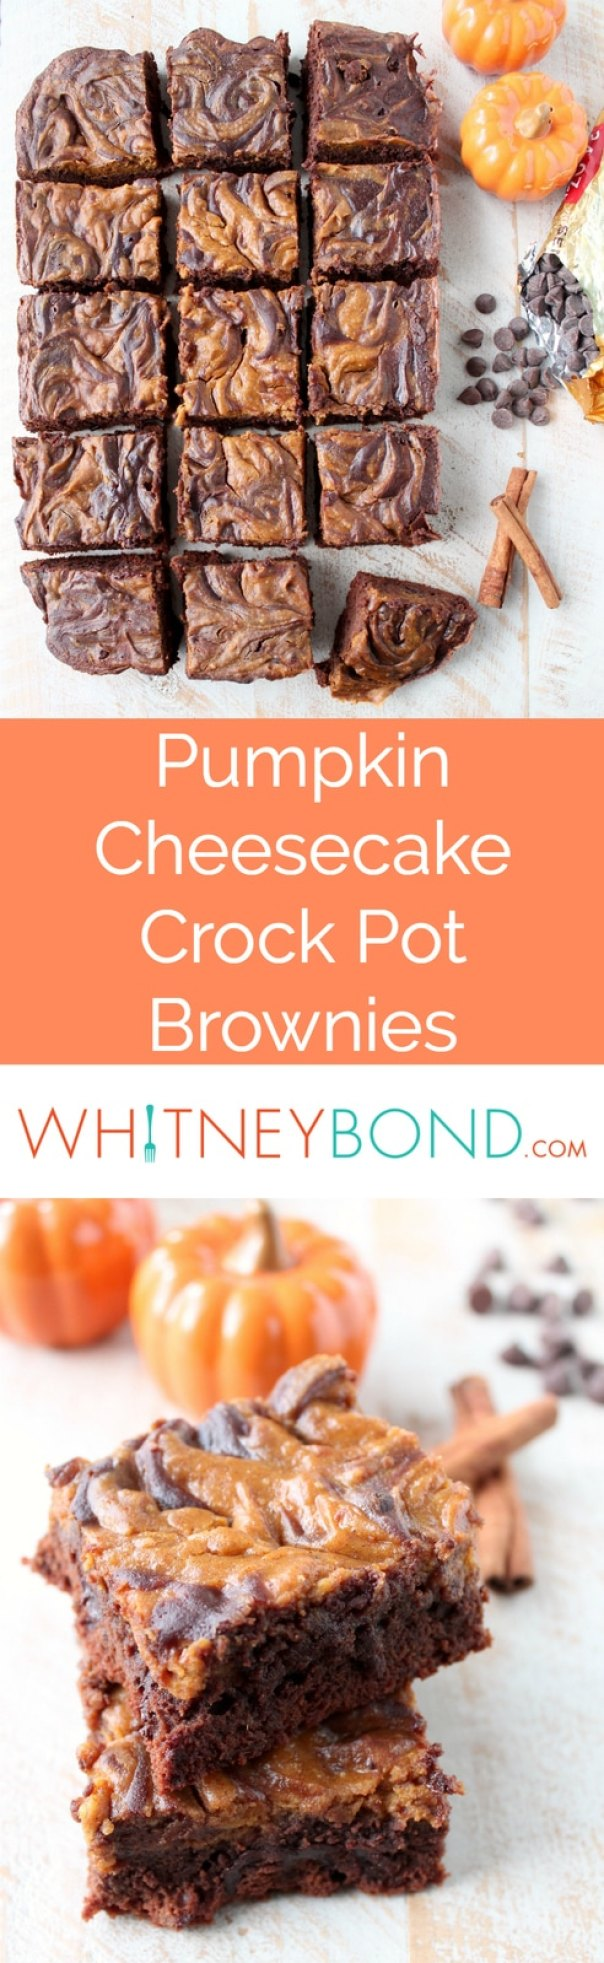 Pumpkin Cheesecake Crock Pot Brownies